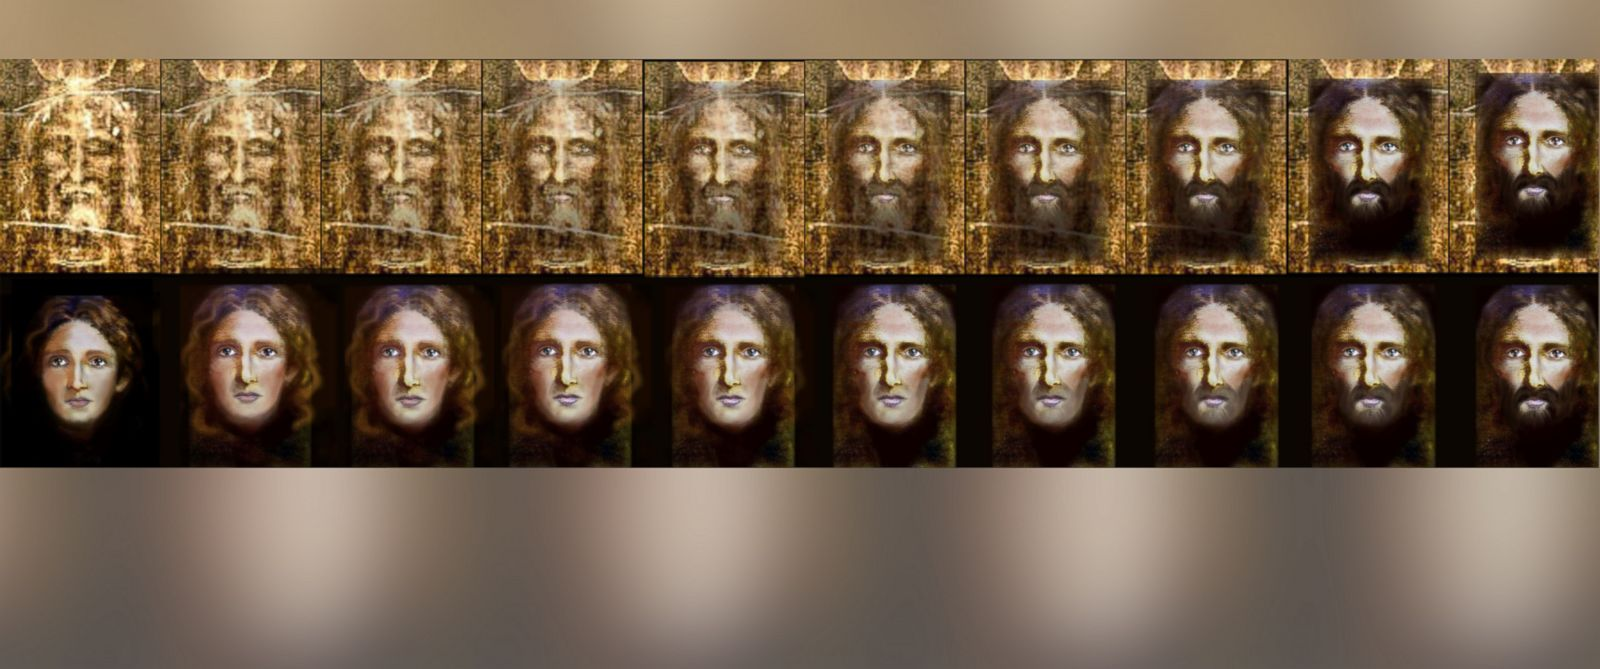 Shroud of Turin Videos at ABC News Video Archive at abcnews.com